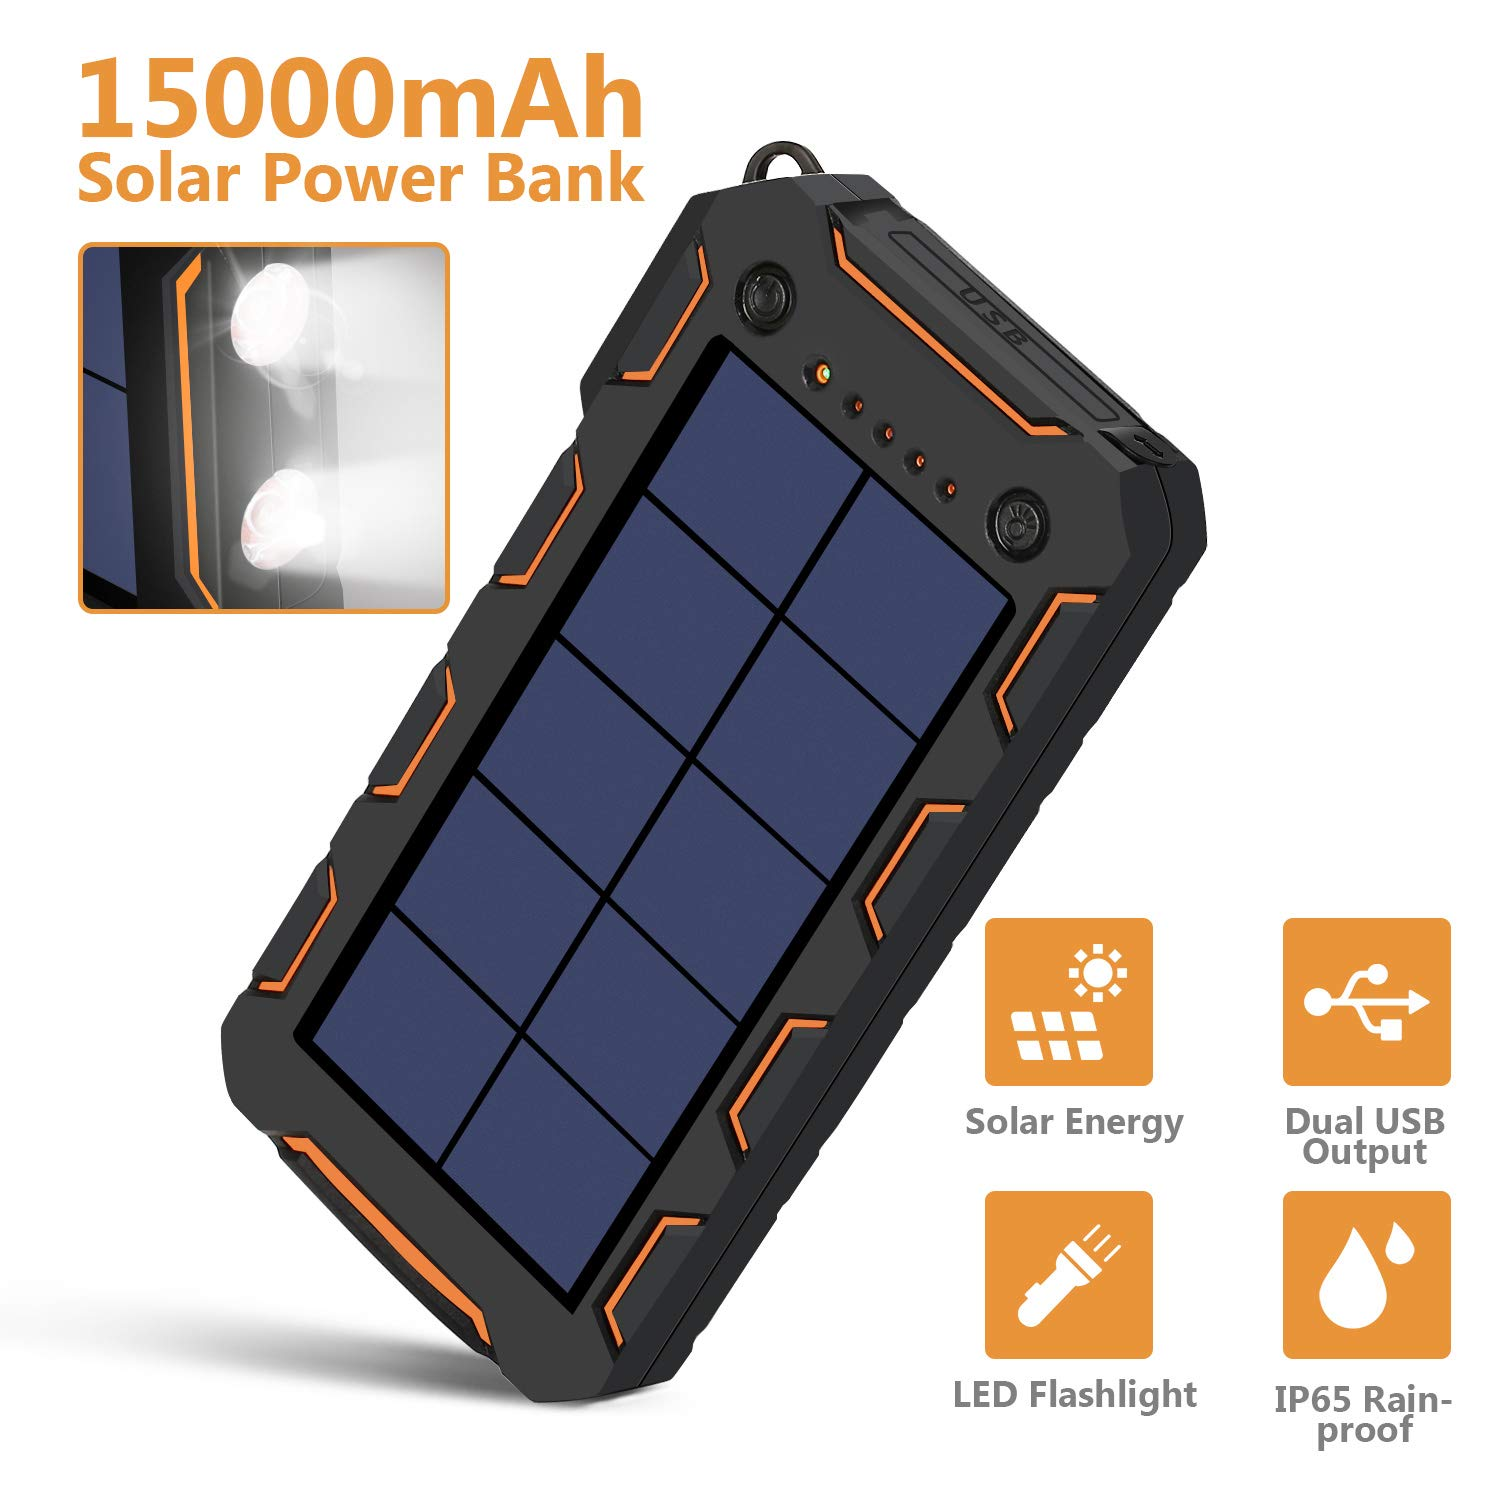 AMAES Solar Charger 15000mAh, Portable Phone Charger External Battery Pack with 1.5W High Efficiency Solar Panel, Dual USB Output Ports, Flashlight, Carabiner, IP65 Rainproof for Camping, Fishing by AMAES